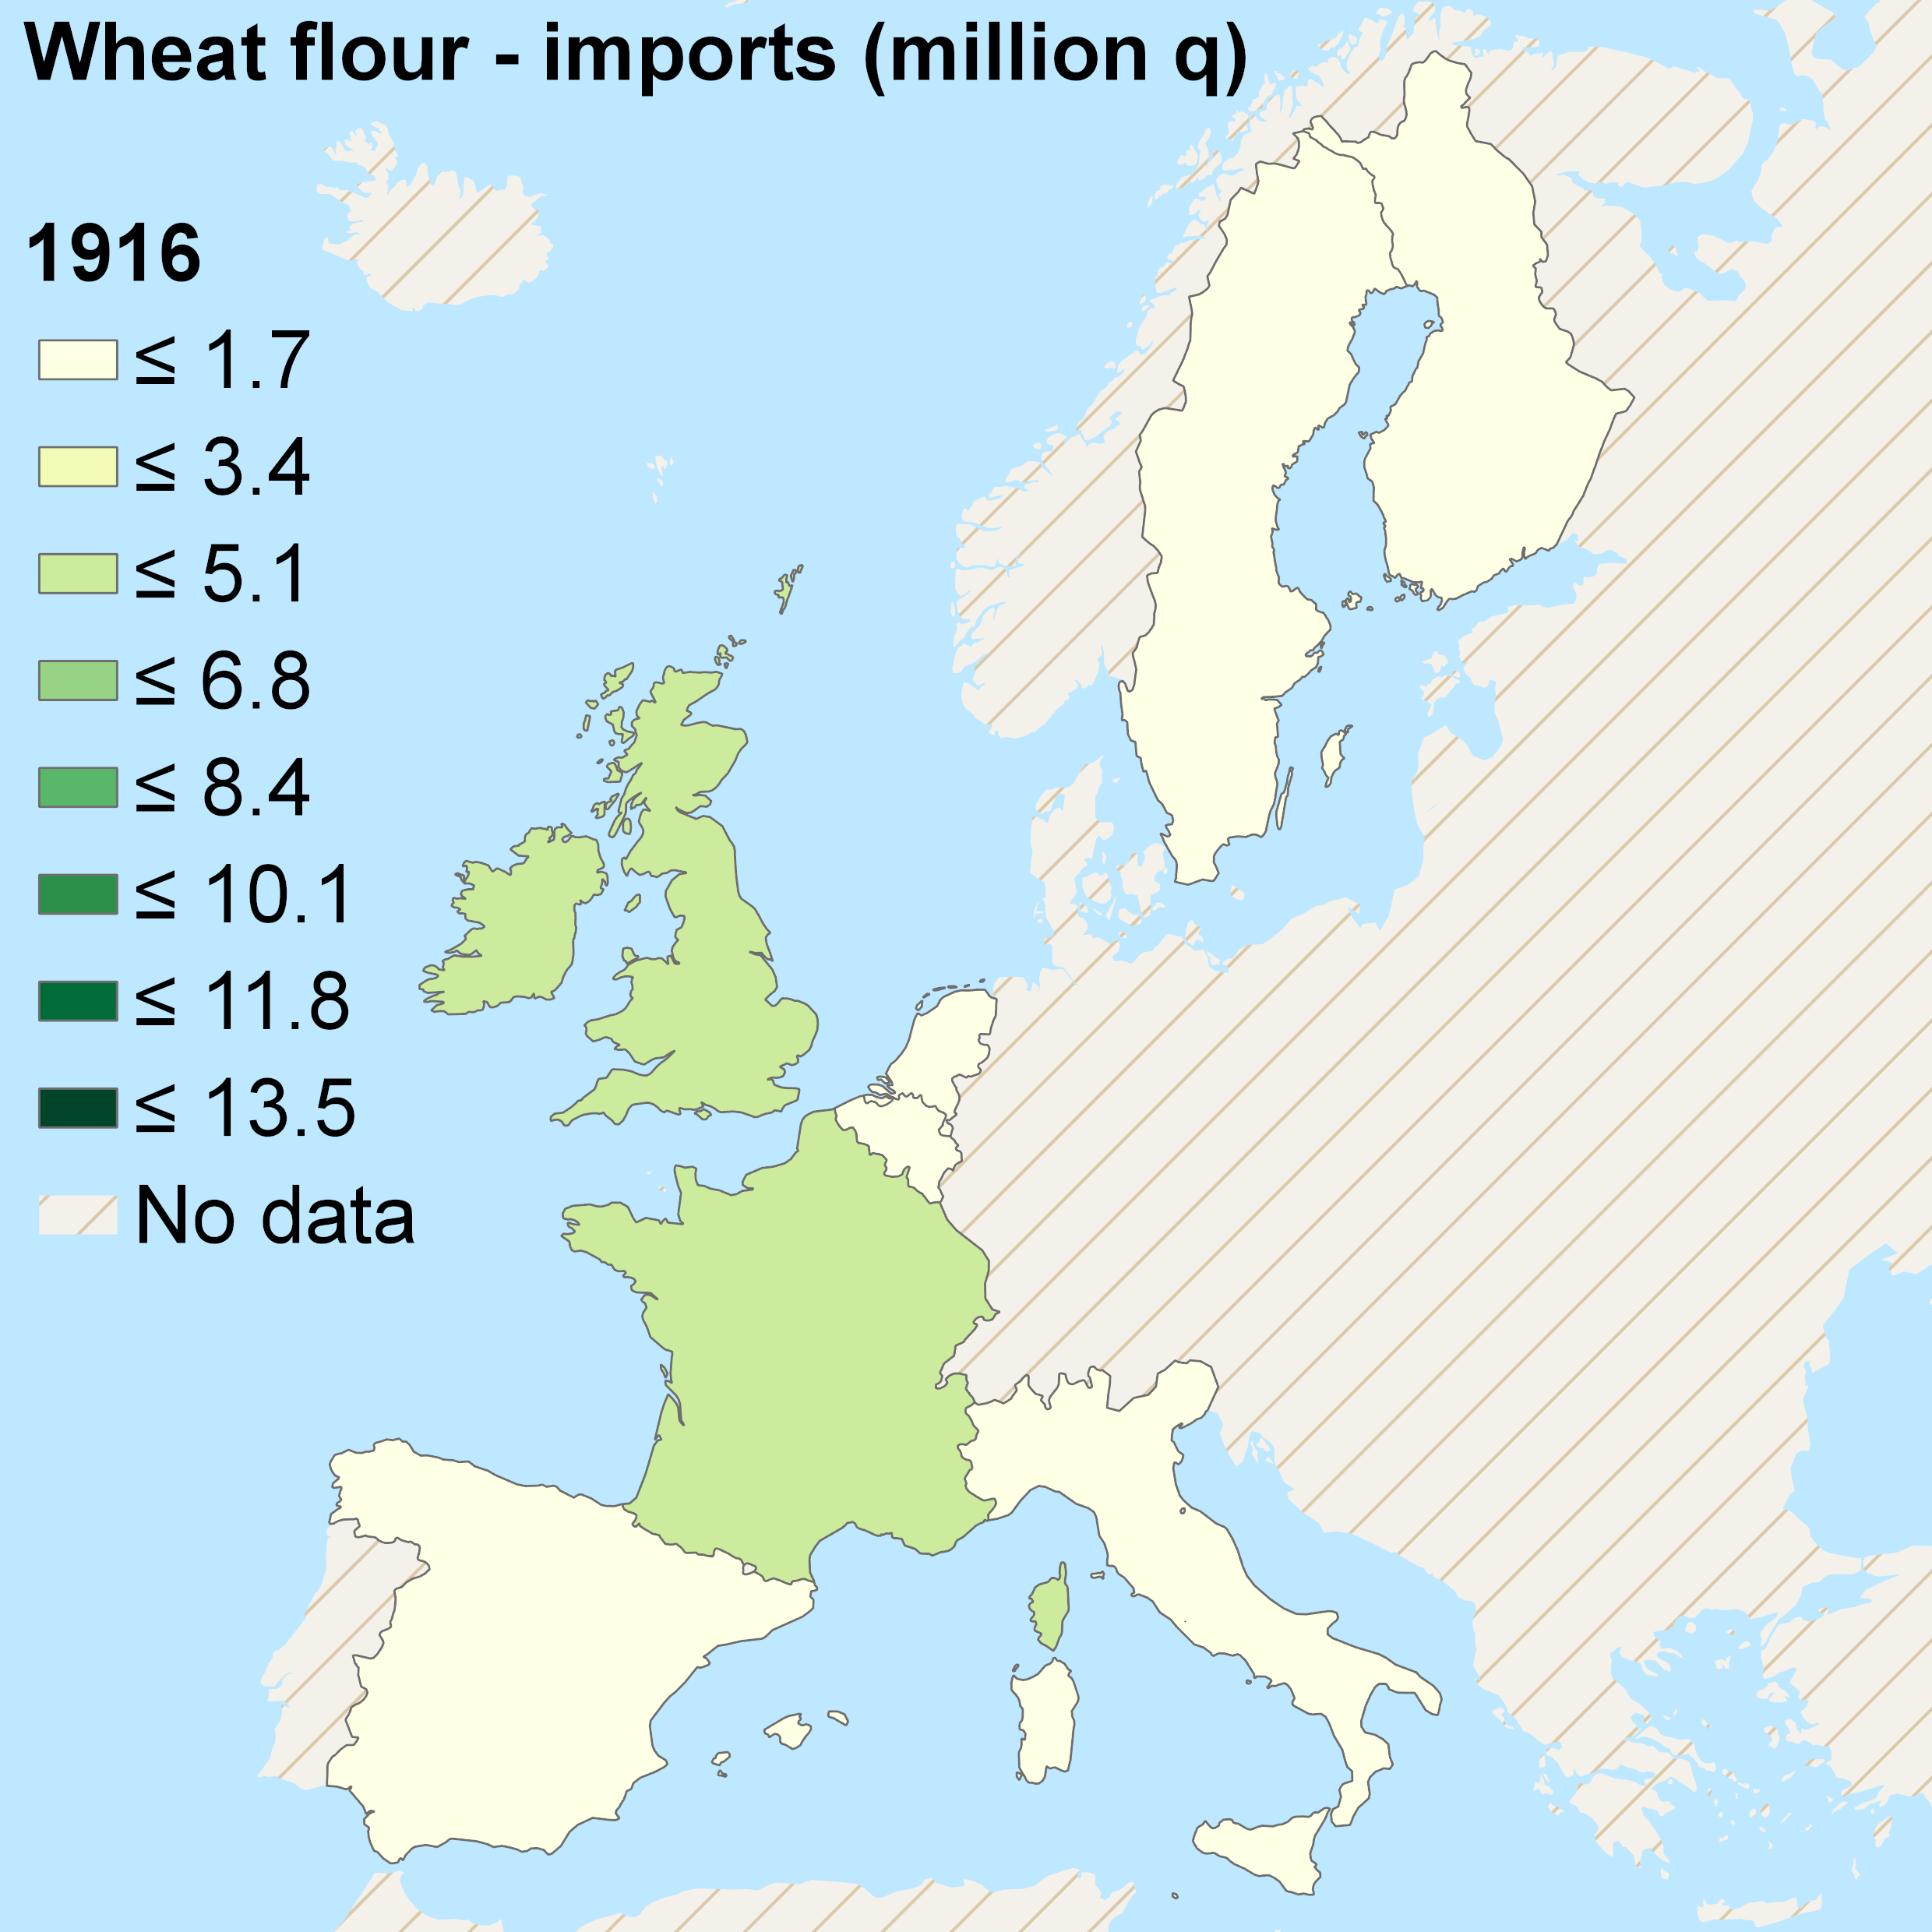 wheat-flour-imports-1916-v2